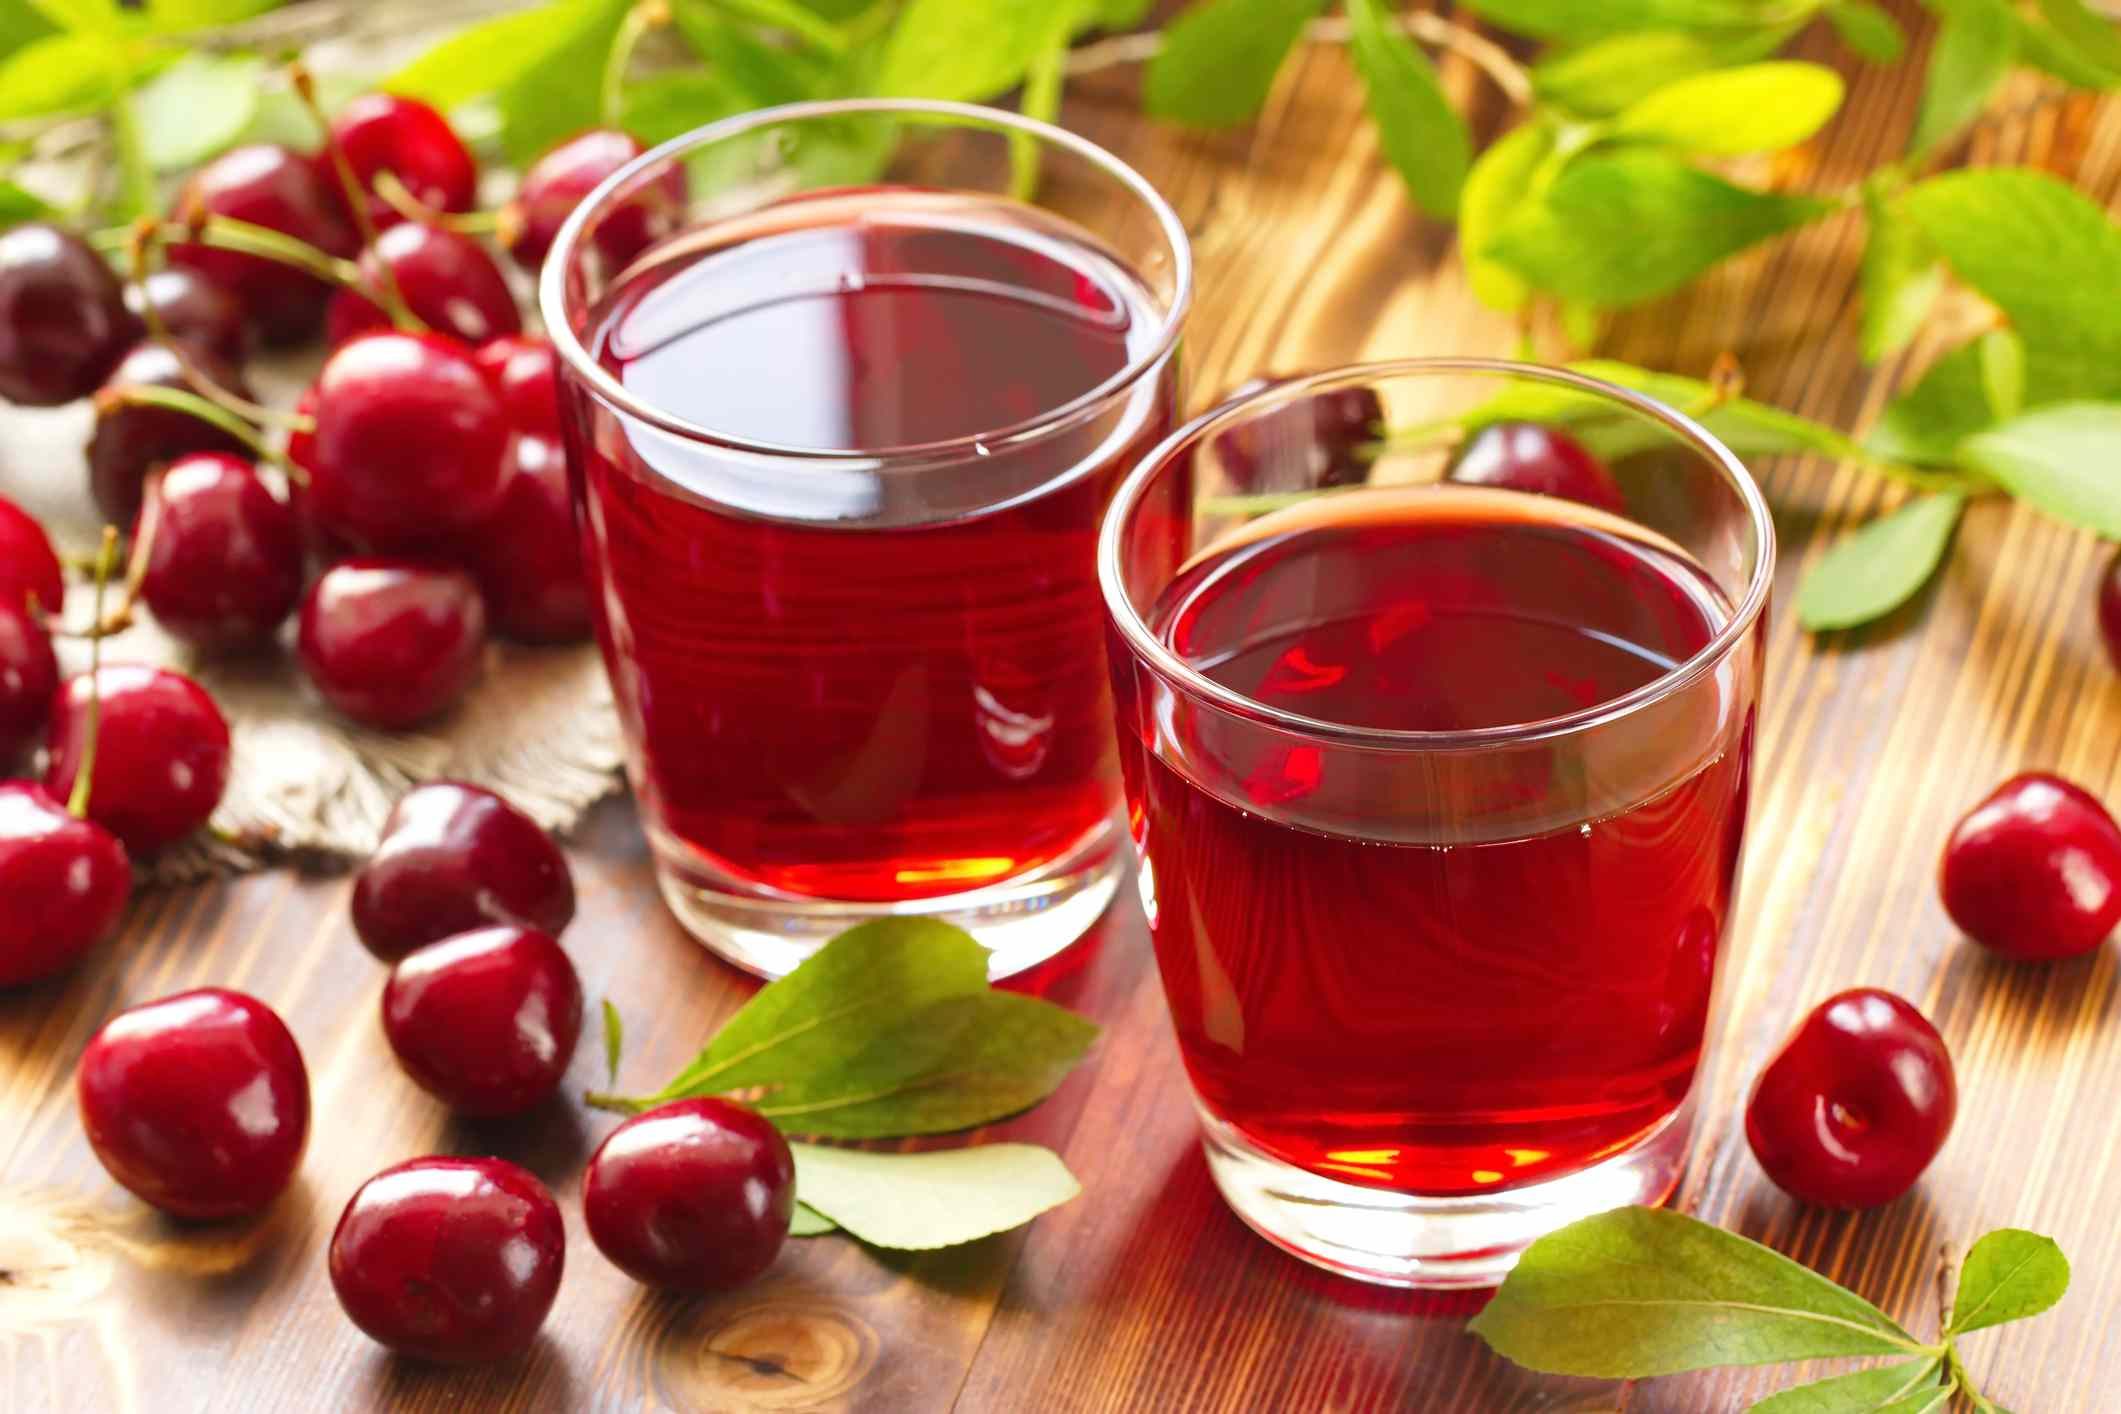 Two glasses of cherry juice surrounded by whole cherries.